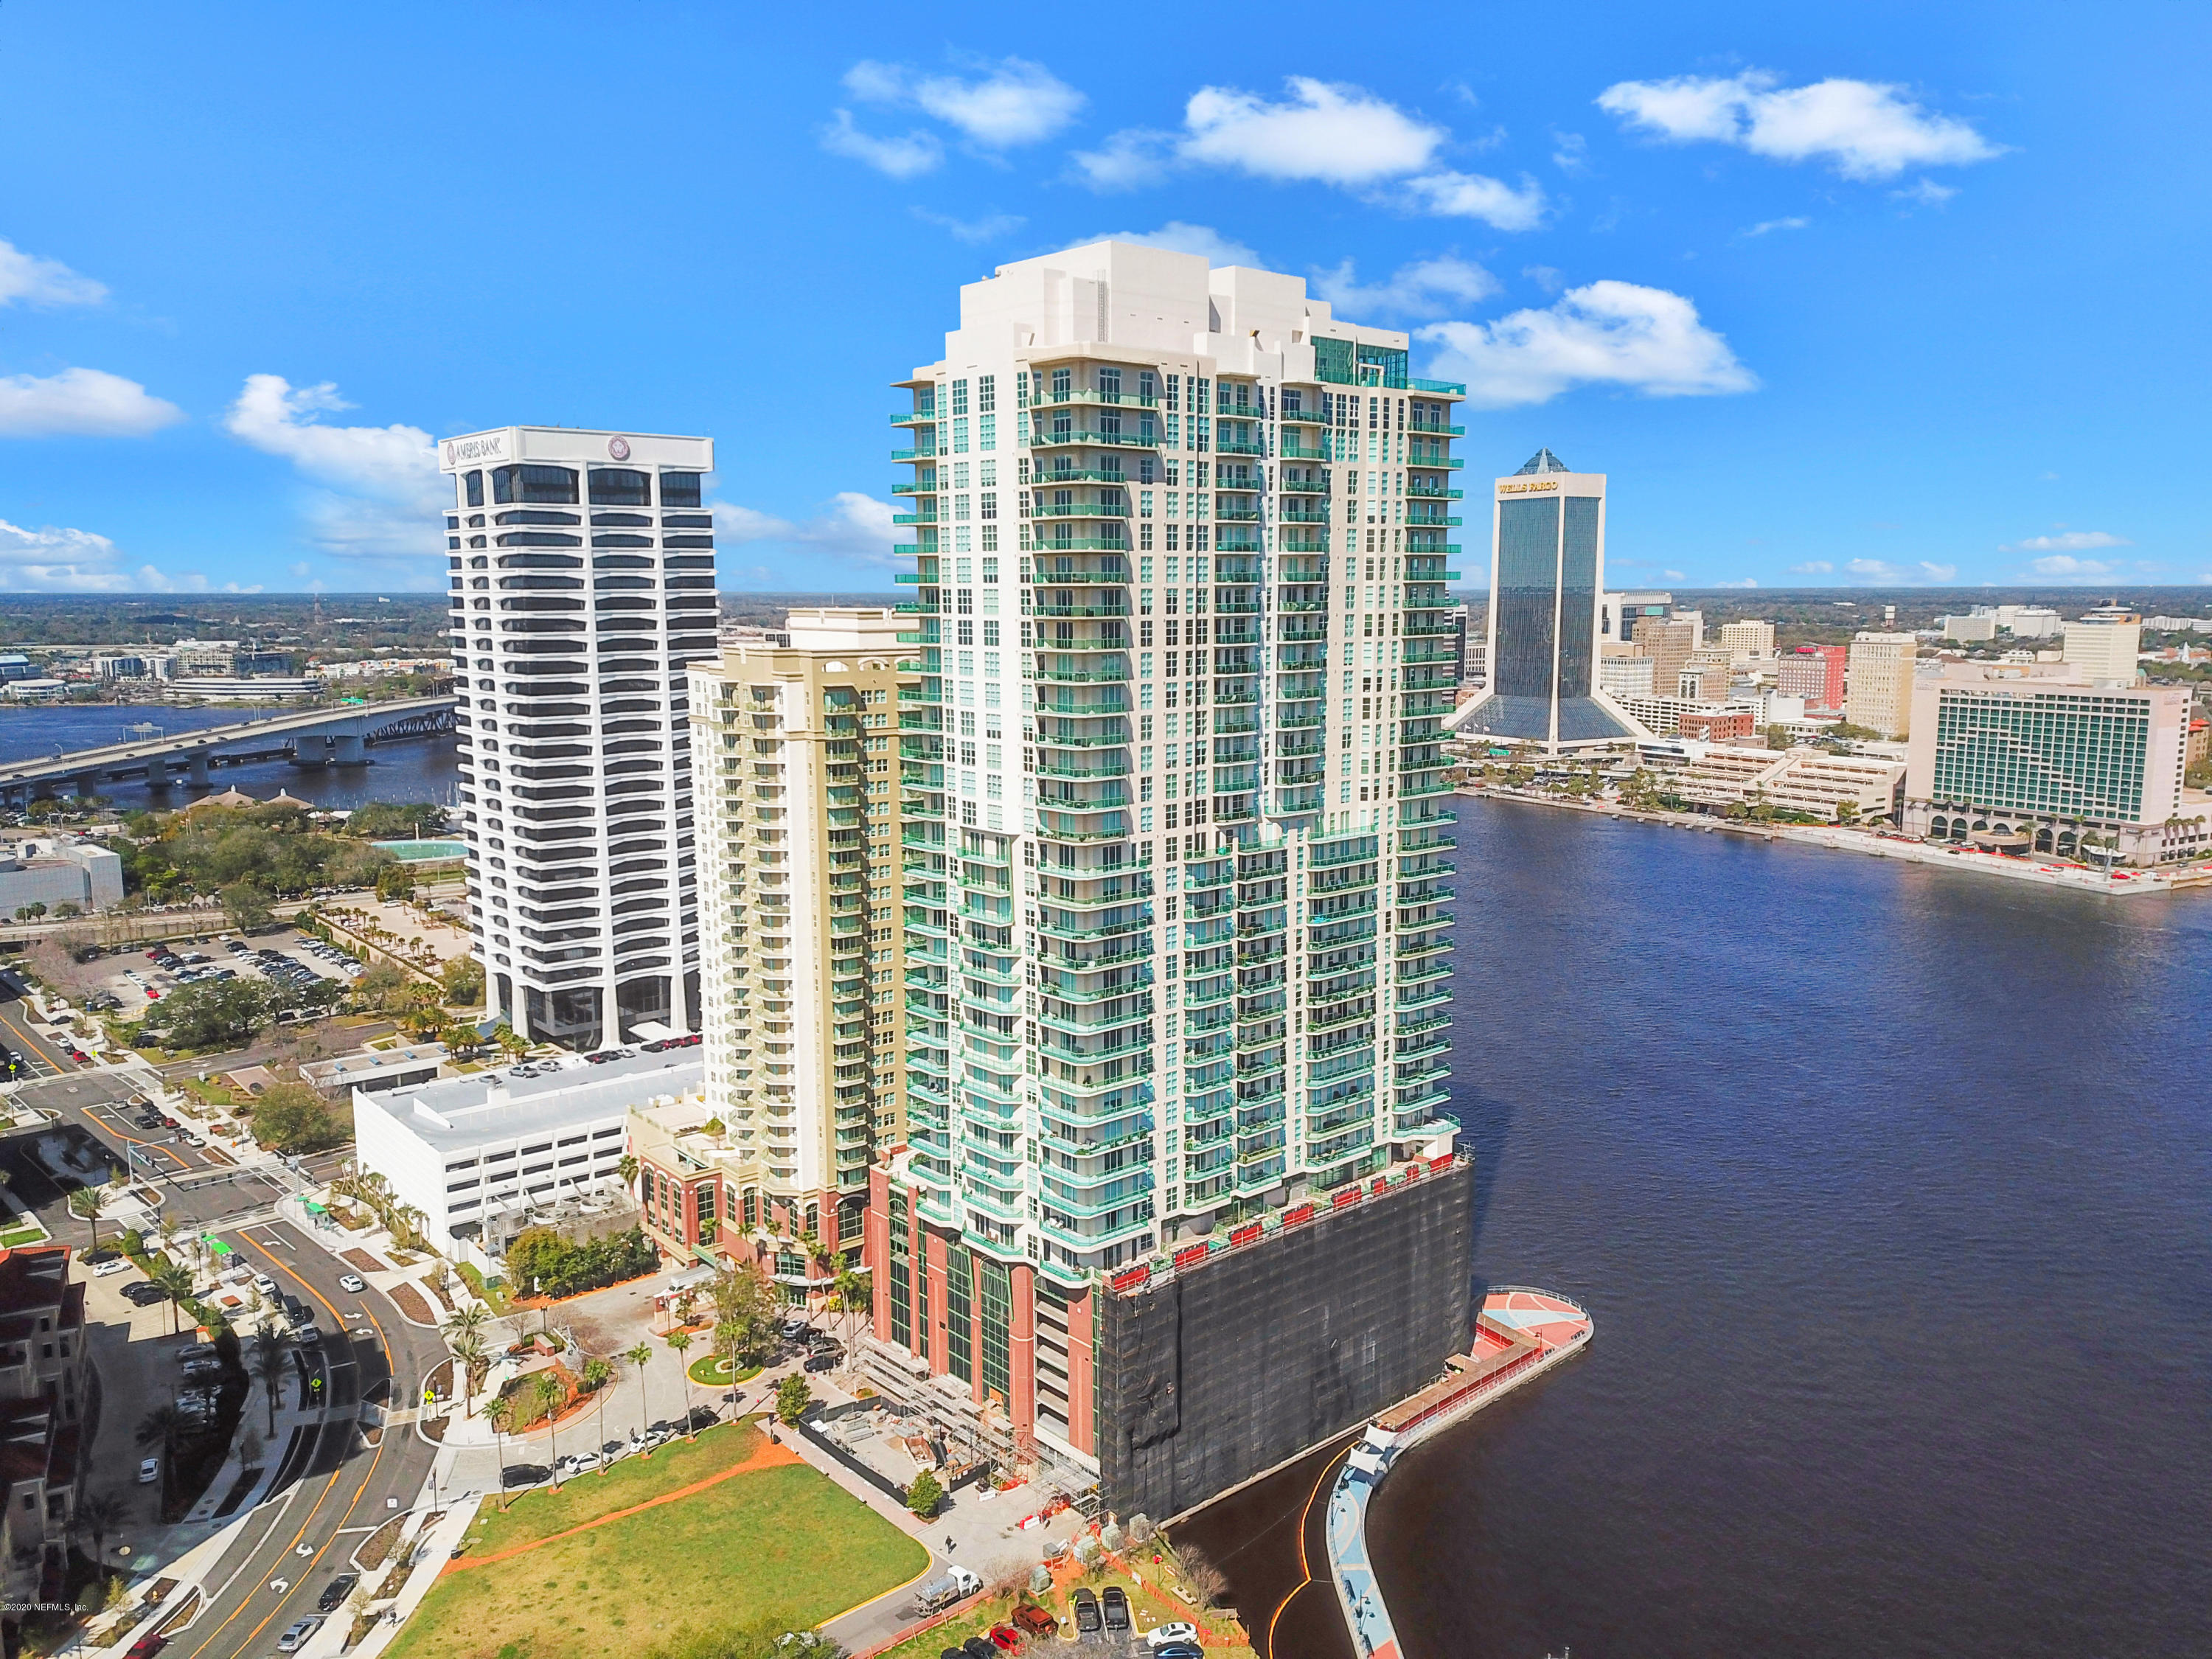 1431 RIVERPLACE, JACKSONVILLE, FLORIDA 32207, 3 Bedrooms Bedrooms, ,3 BathroomsBathrooms,Residential,For sale,RIVERPLACE,1040760